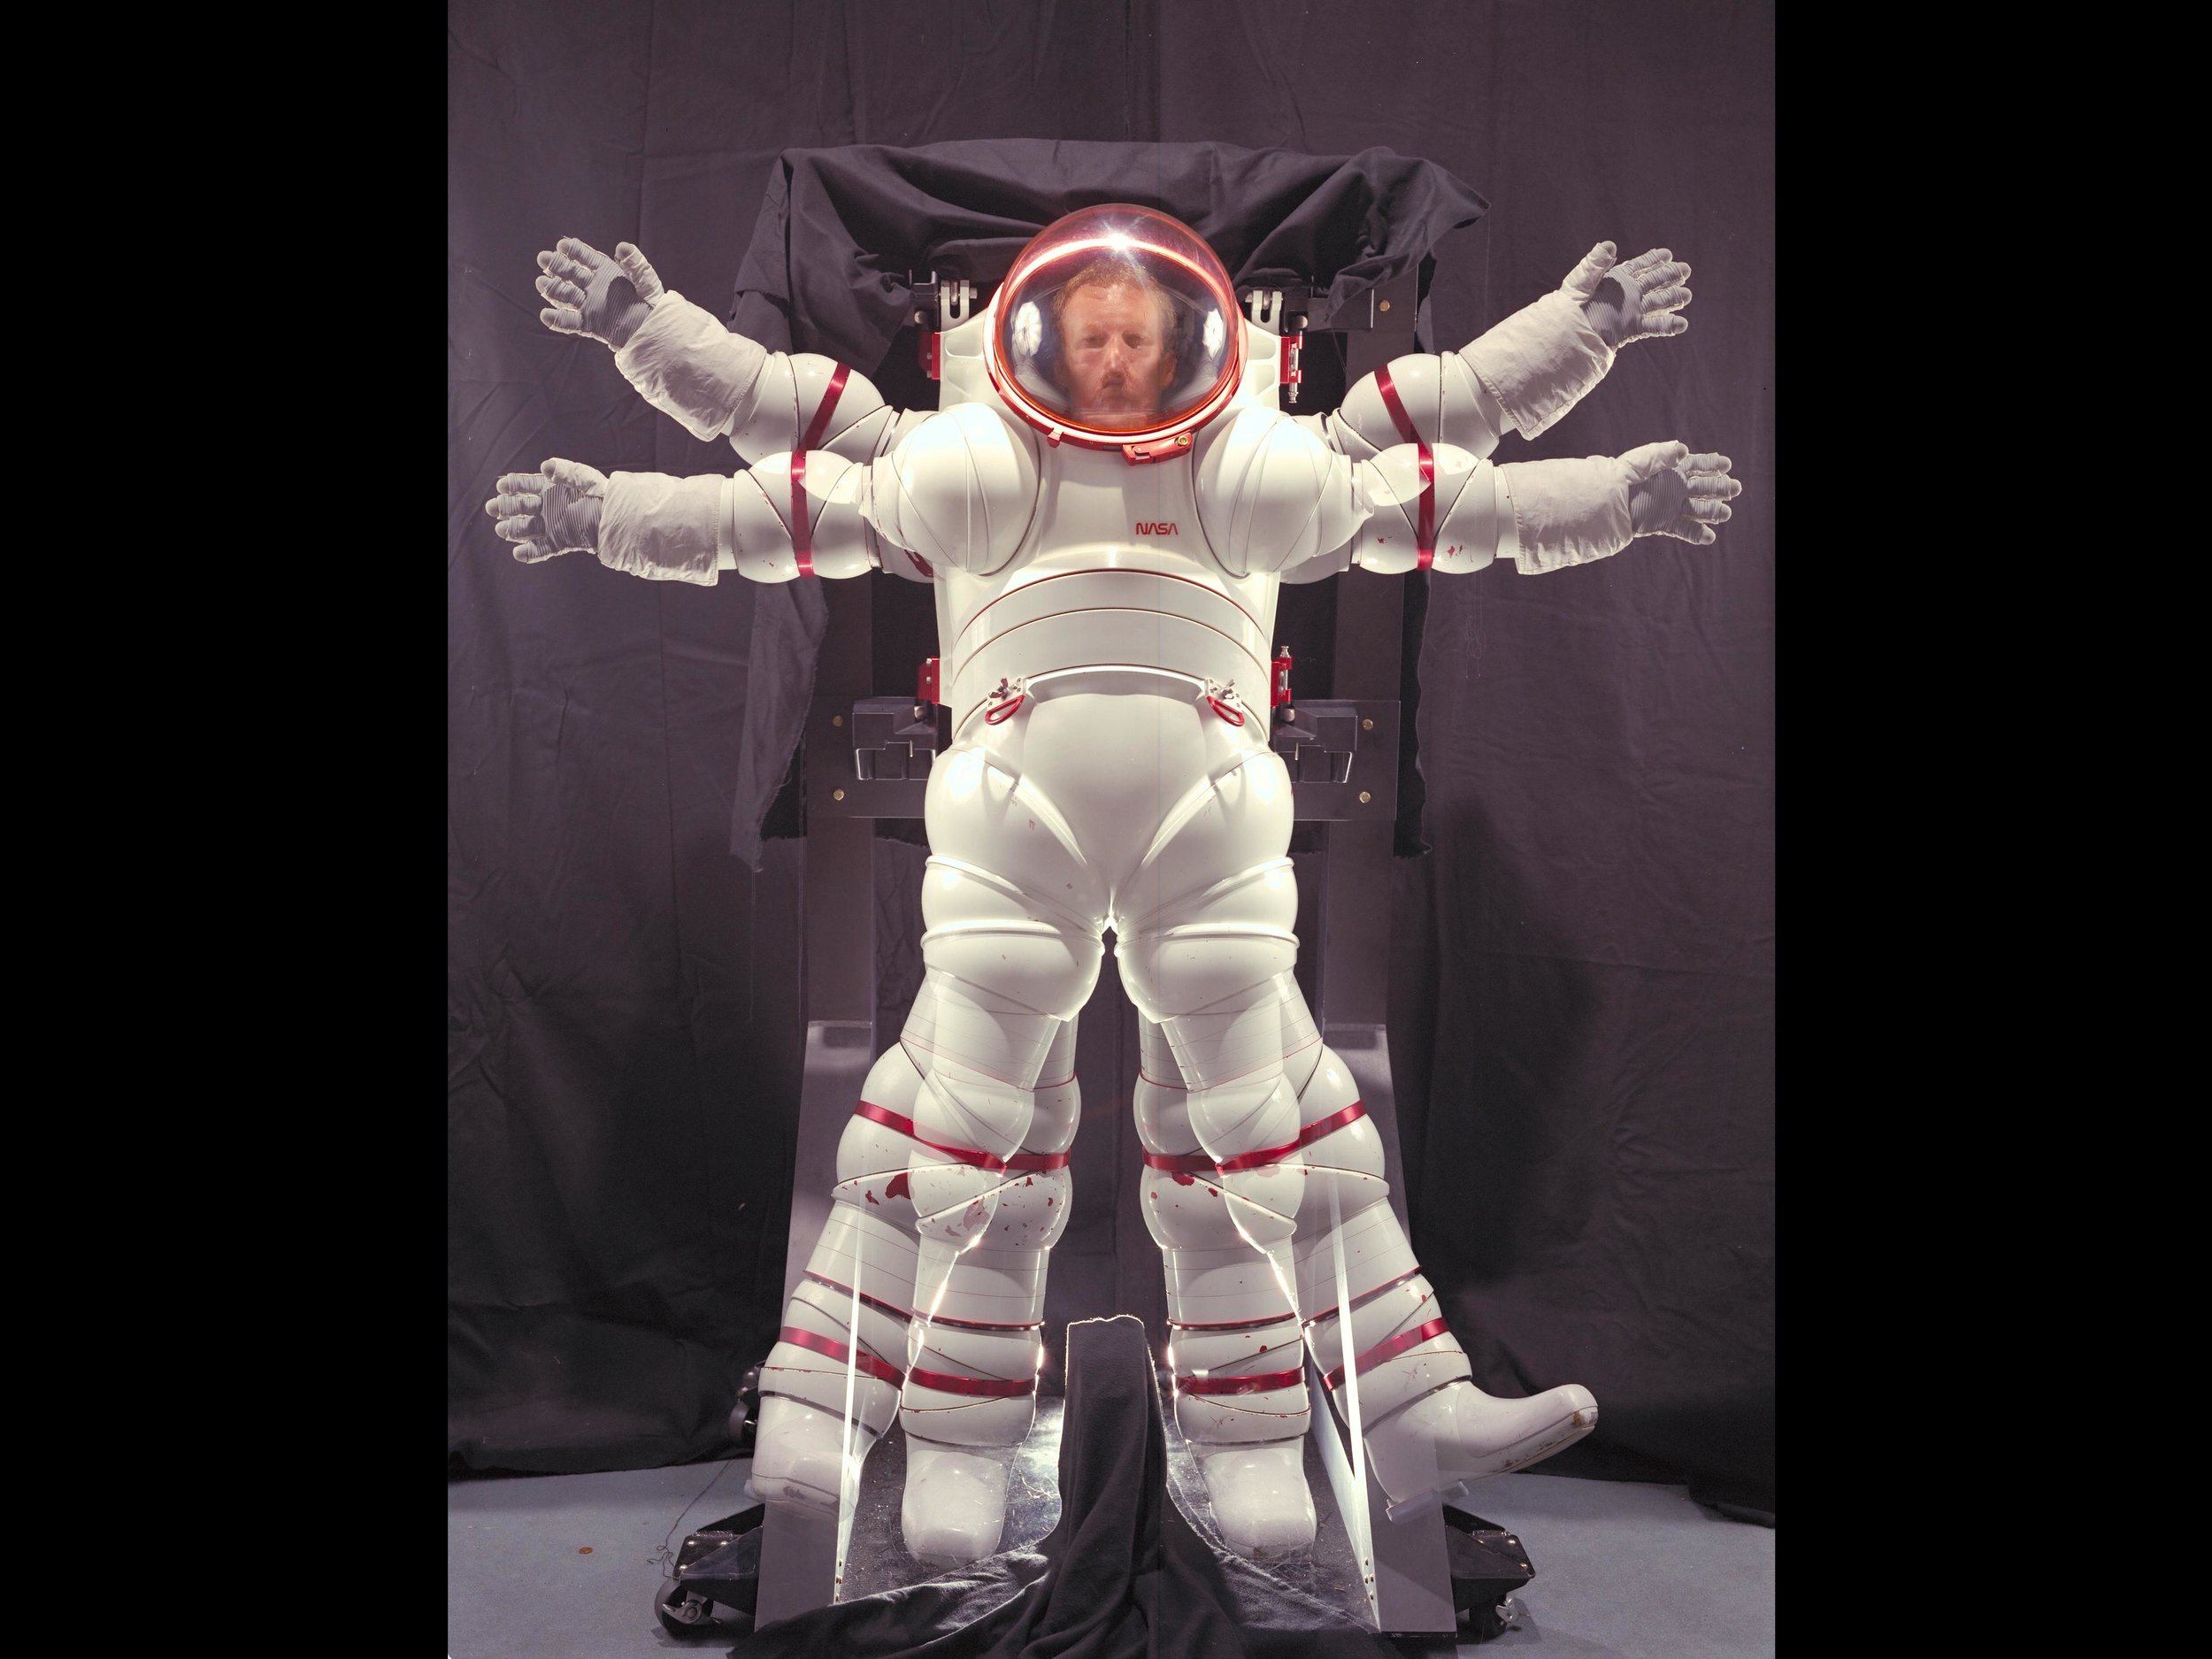 Developed at NASA Ames Research Center in the 1980s, the AX-5 high pressure, zero prebreathe hard suit was developed. It achieved mobility through a constant volume, using a hard metal / composite rigid exoskeleton design. Image credit: NASA